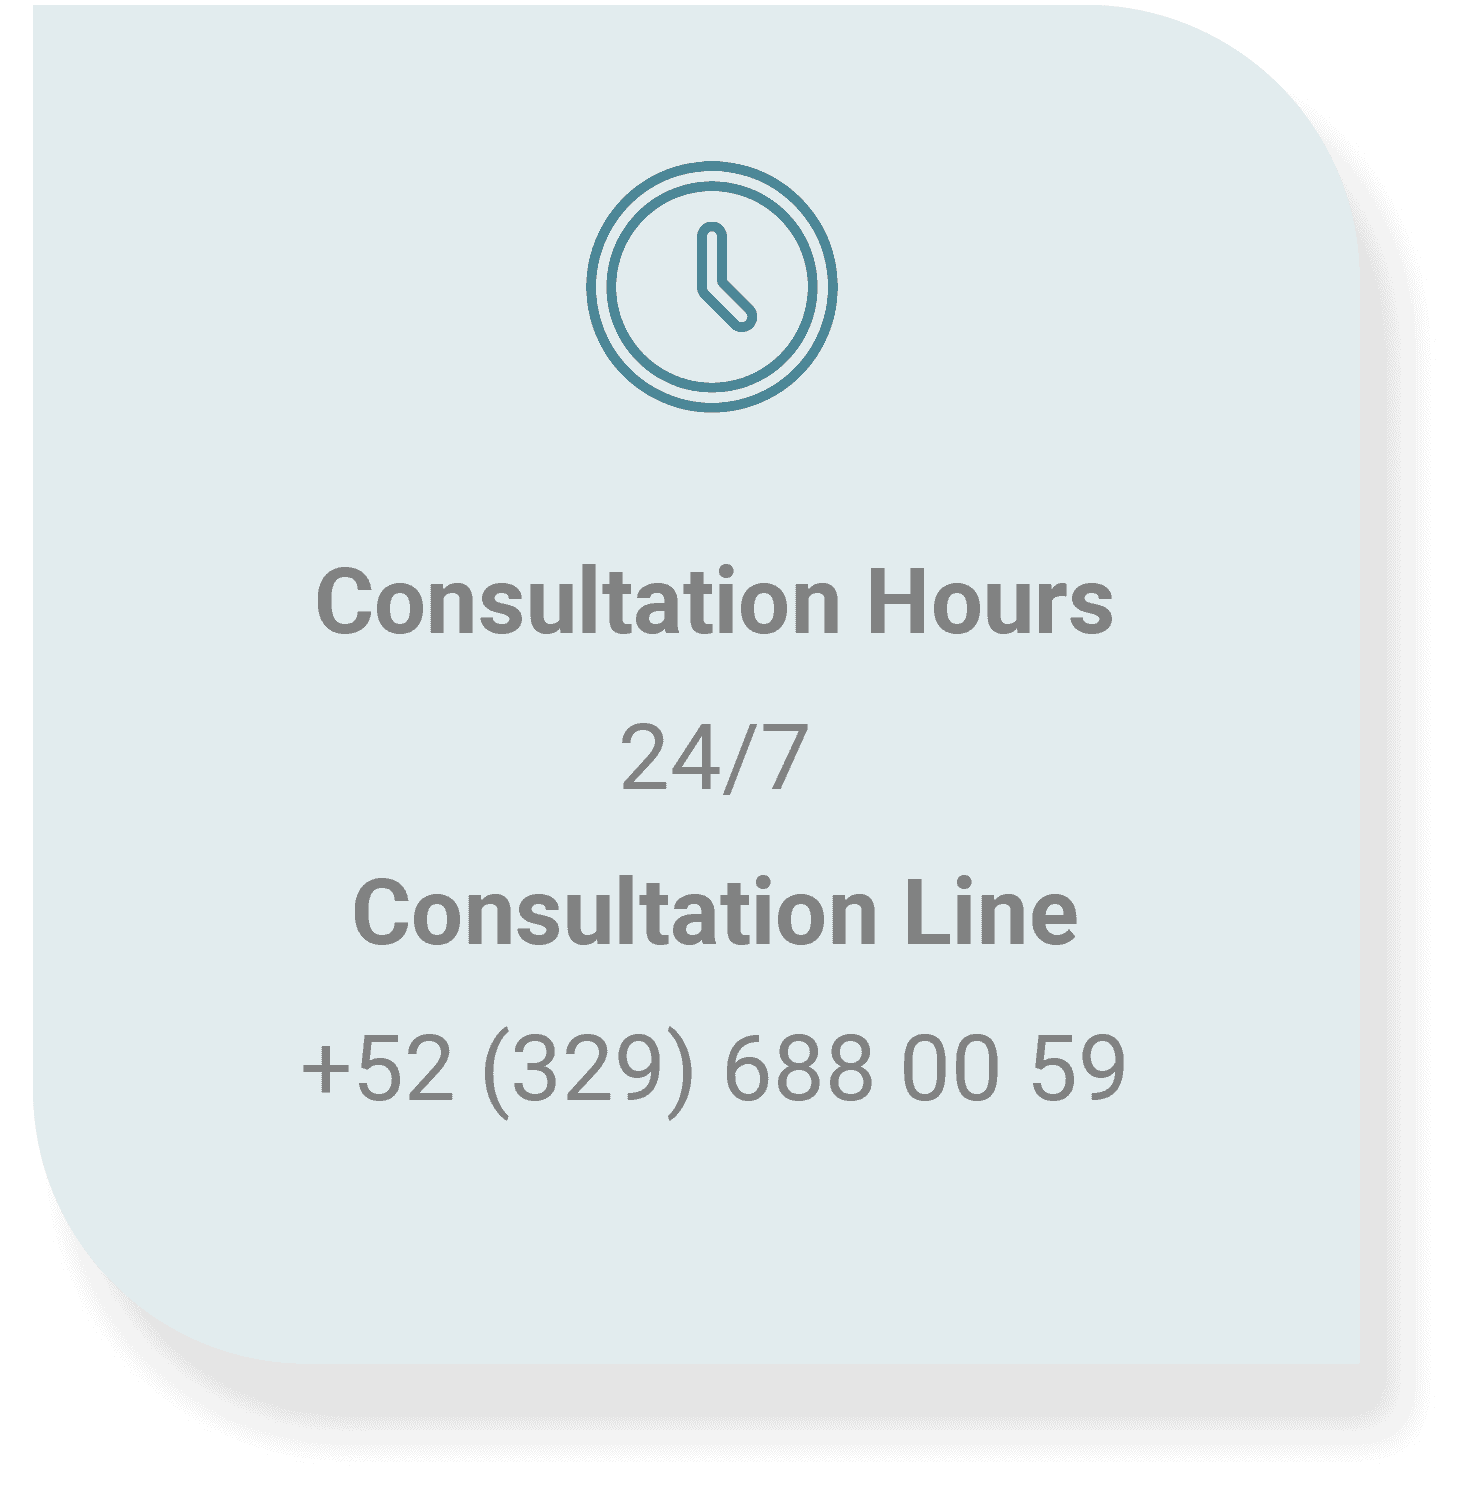 Consultation Hours